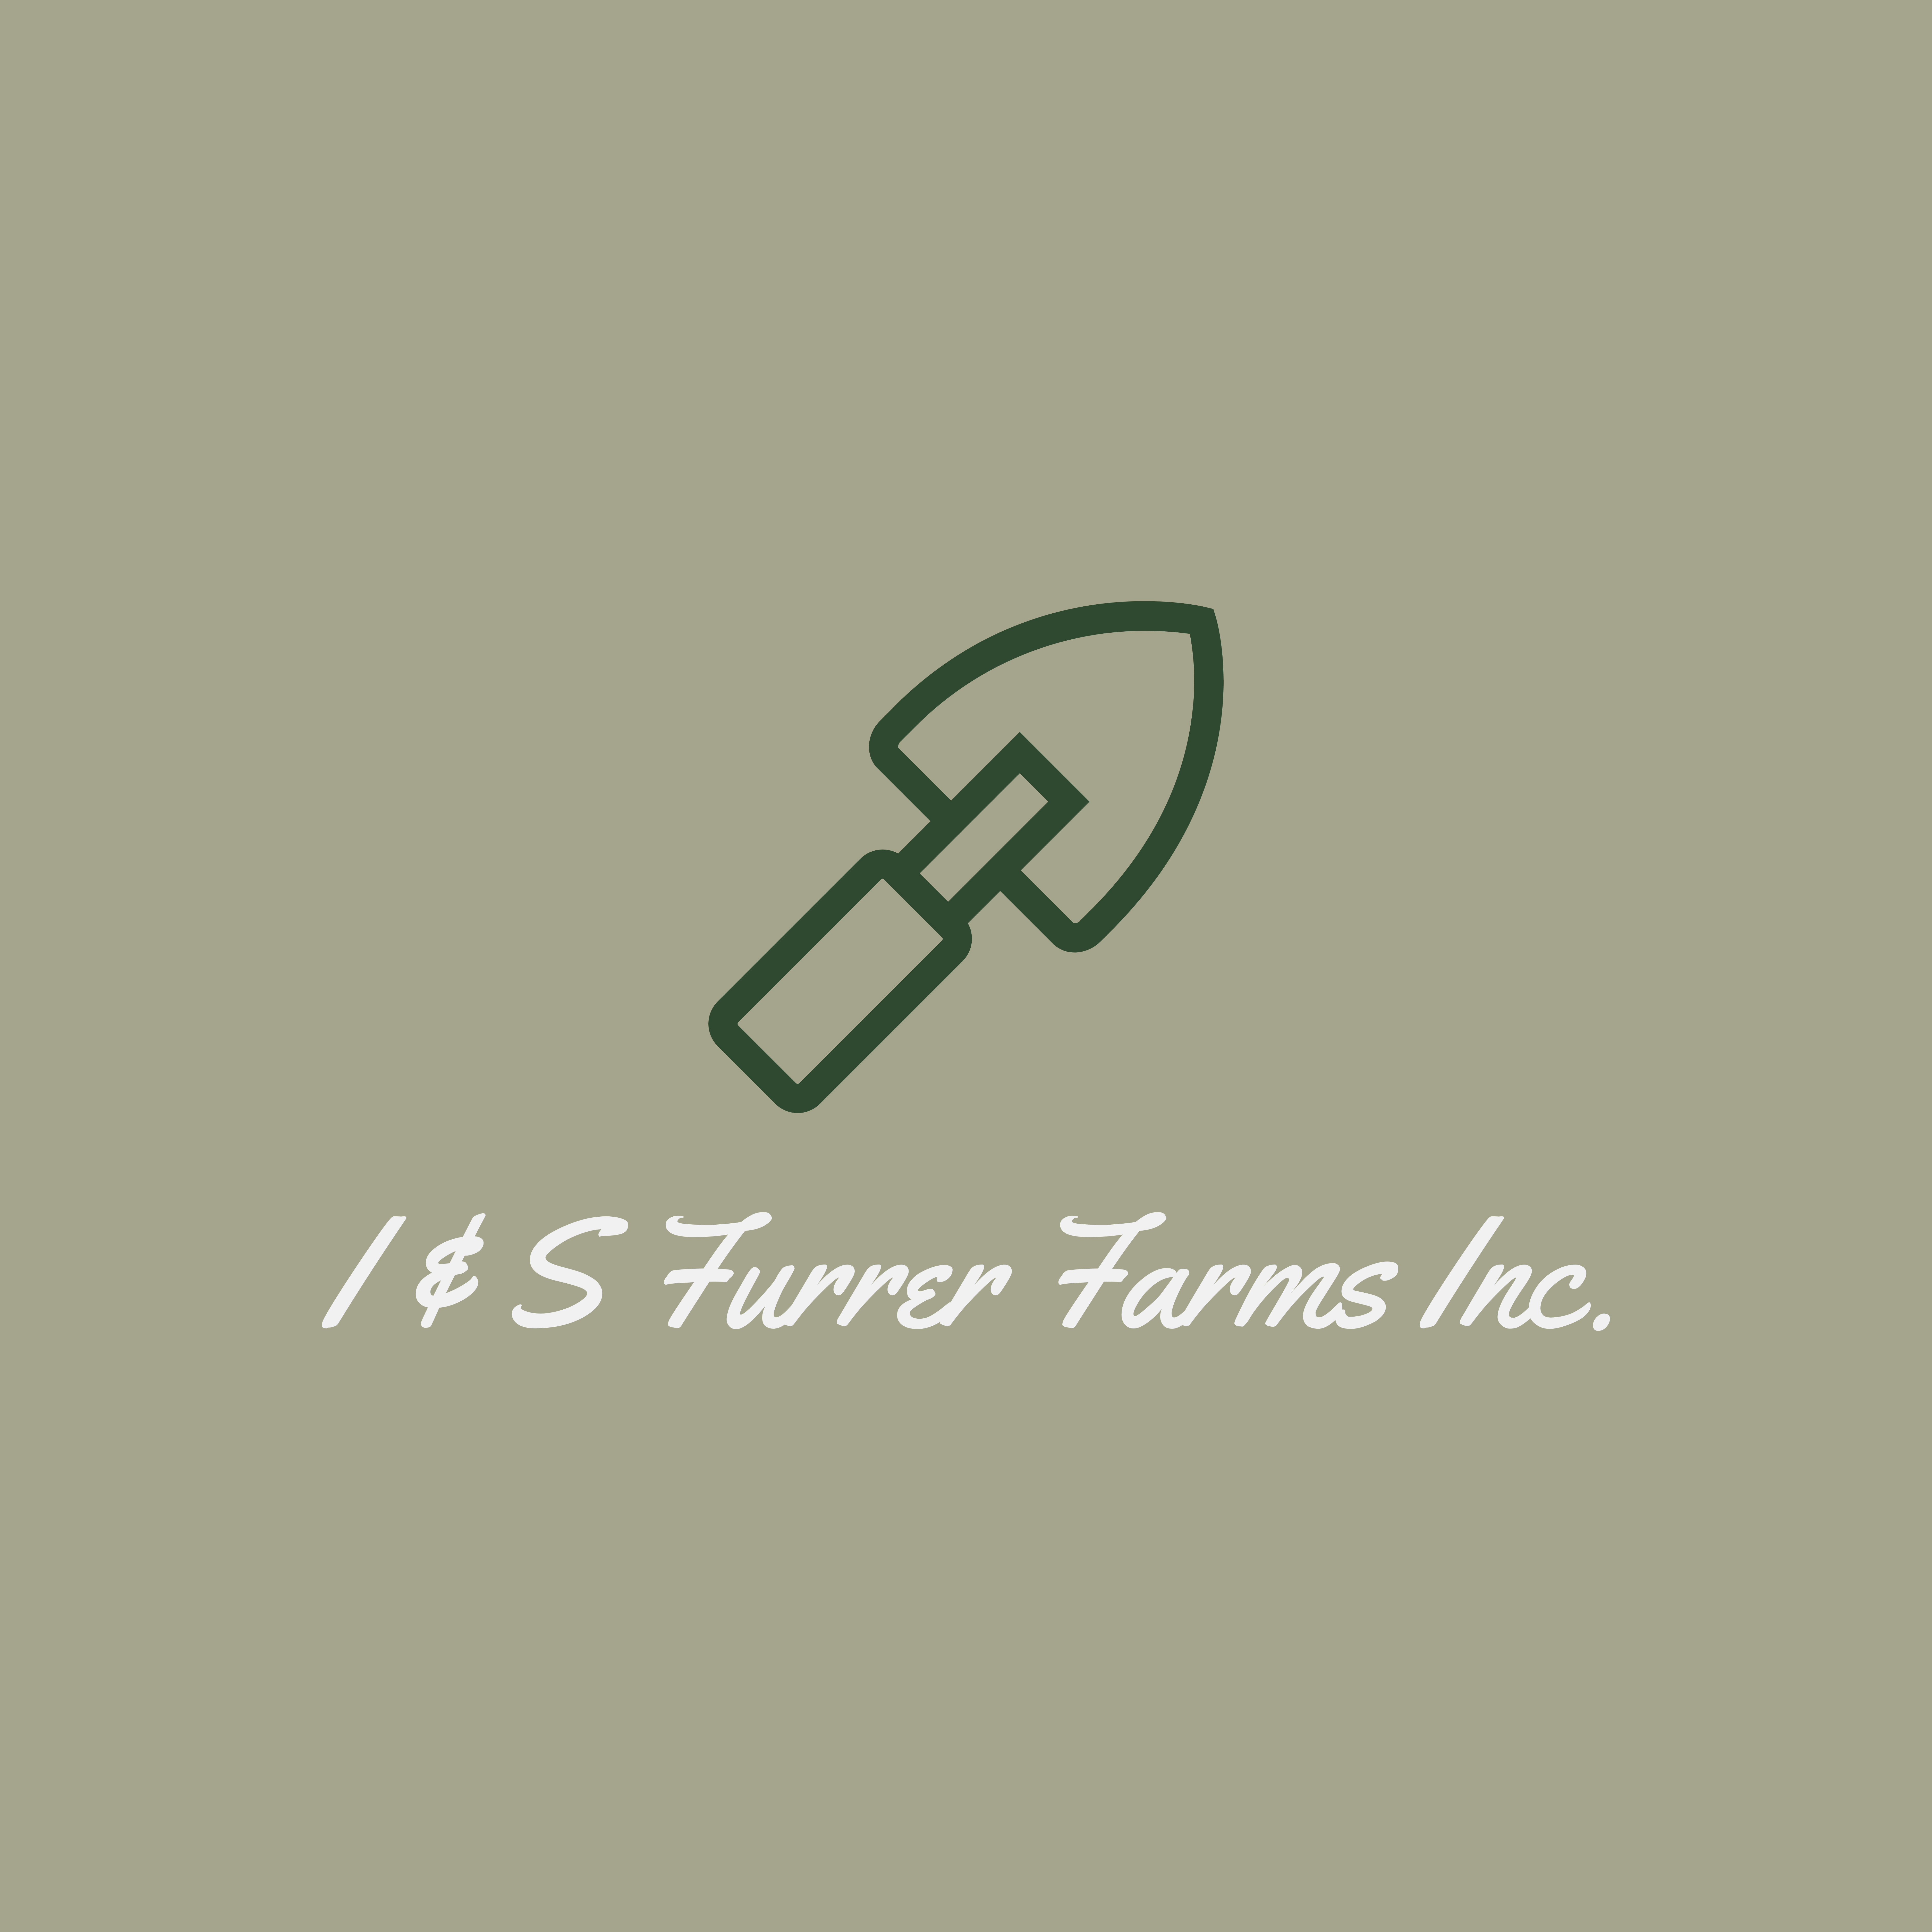 I & S Furrer Farms Inc. logo